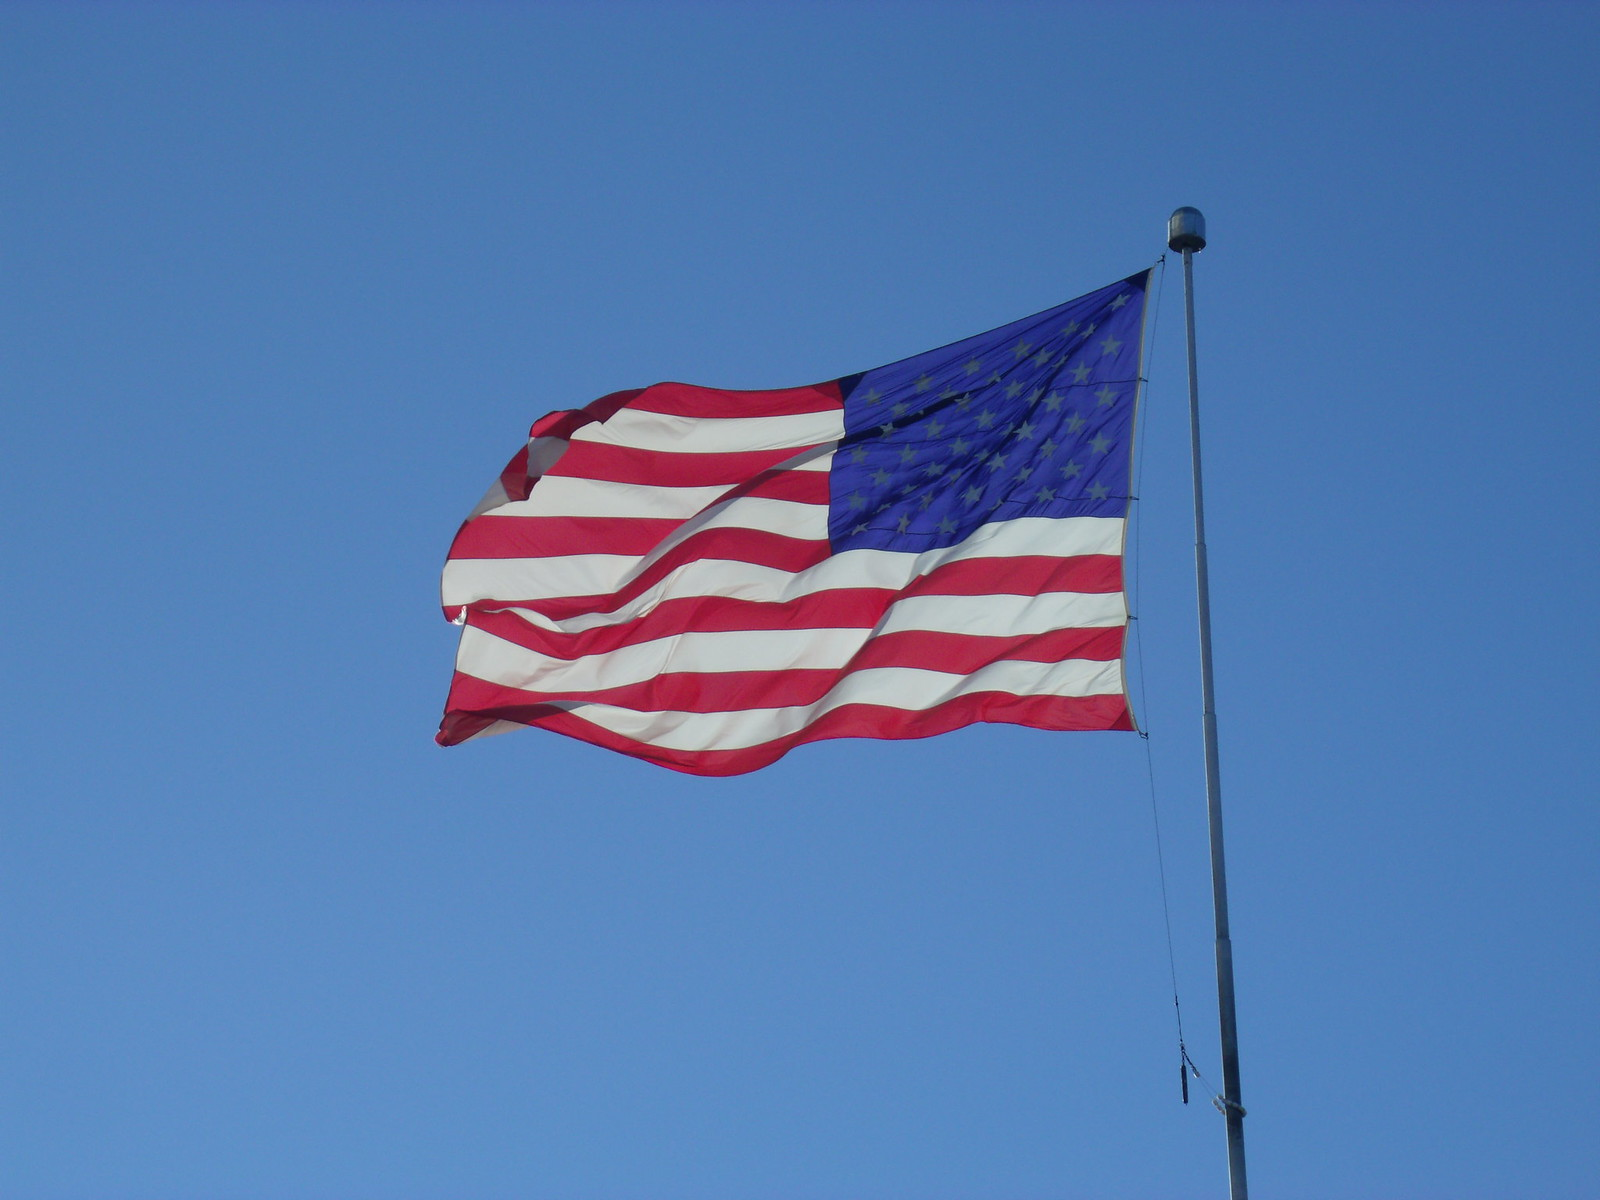 American Flag Under Blue Sky By Sherrie D. Larch